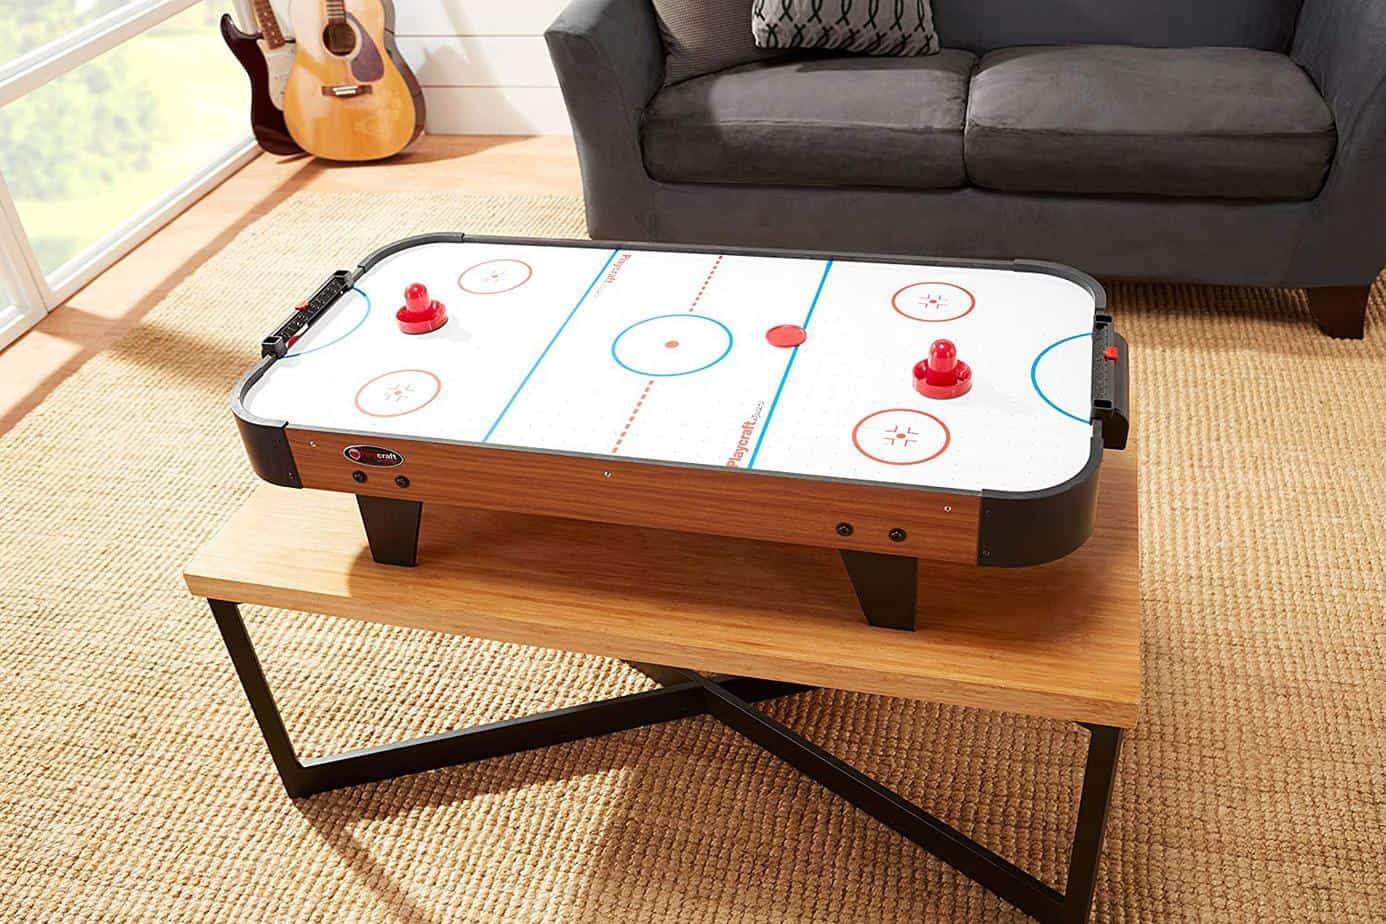 Tabletop Air Hockey Tables - Pros, Cons, And Top Models